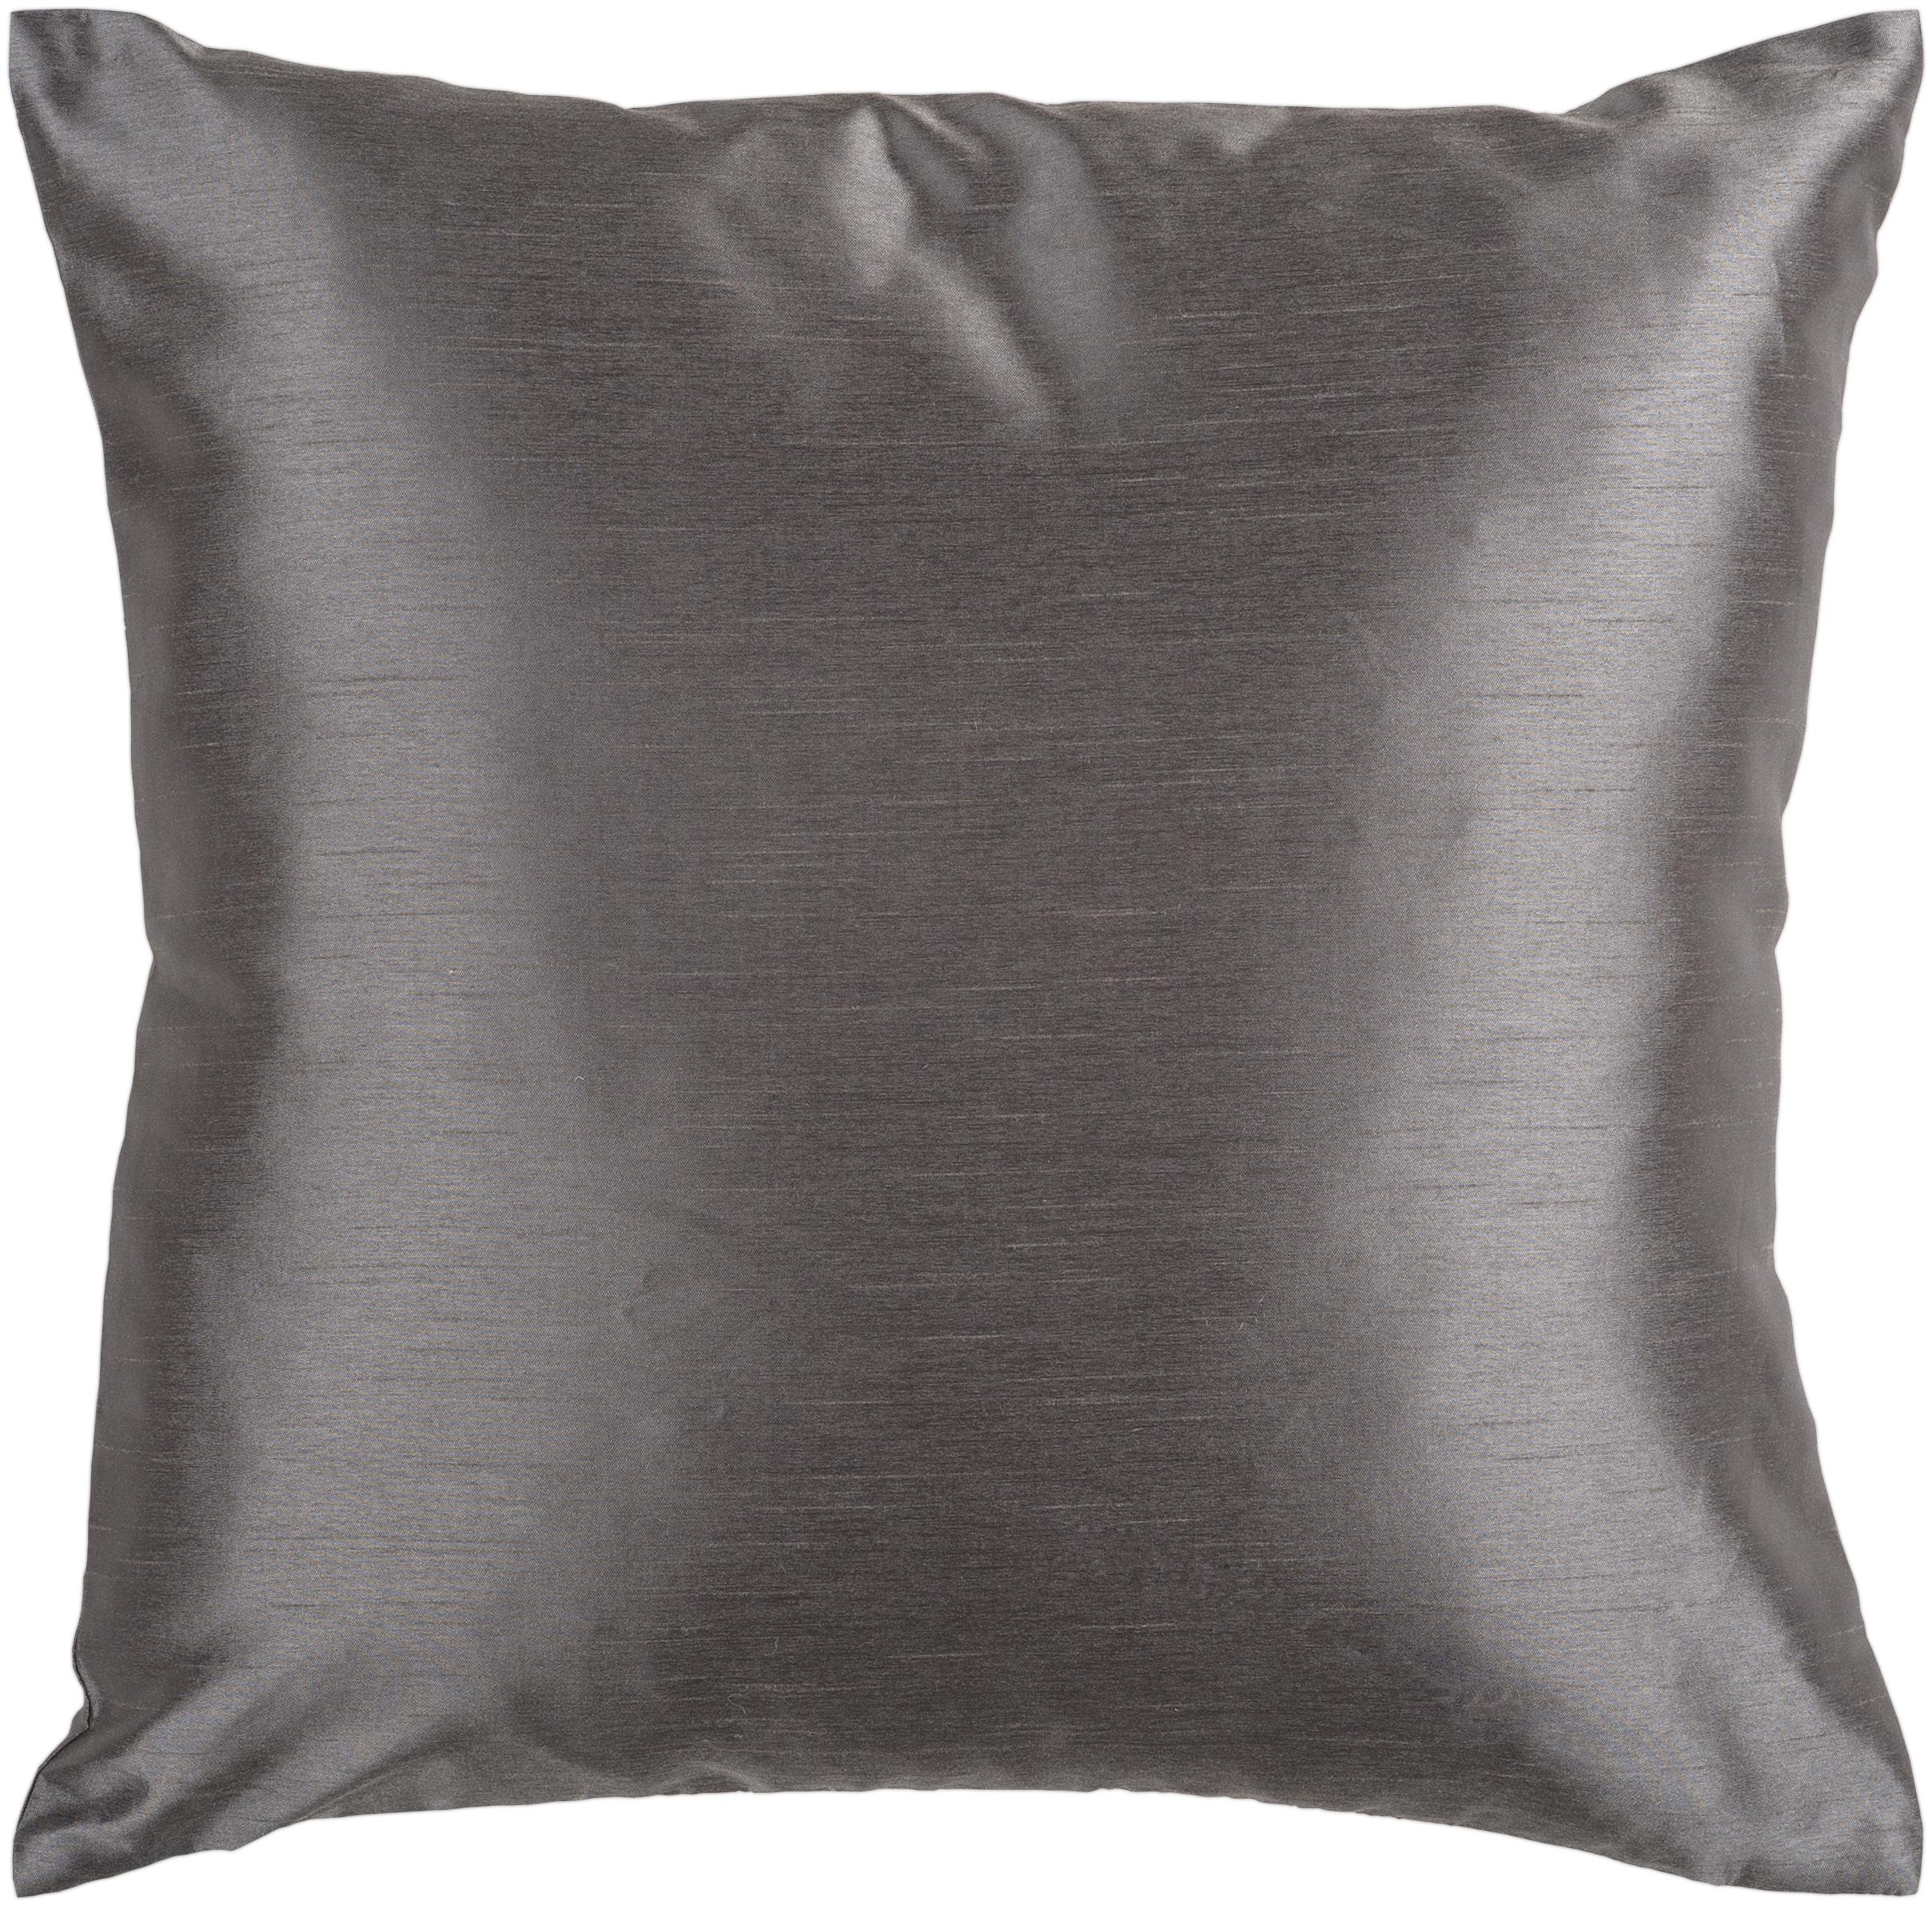 "Pillows 22"" x 22"" Pillow by Surya at Jacksonville Furniture Mart"